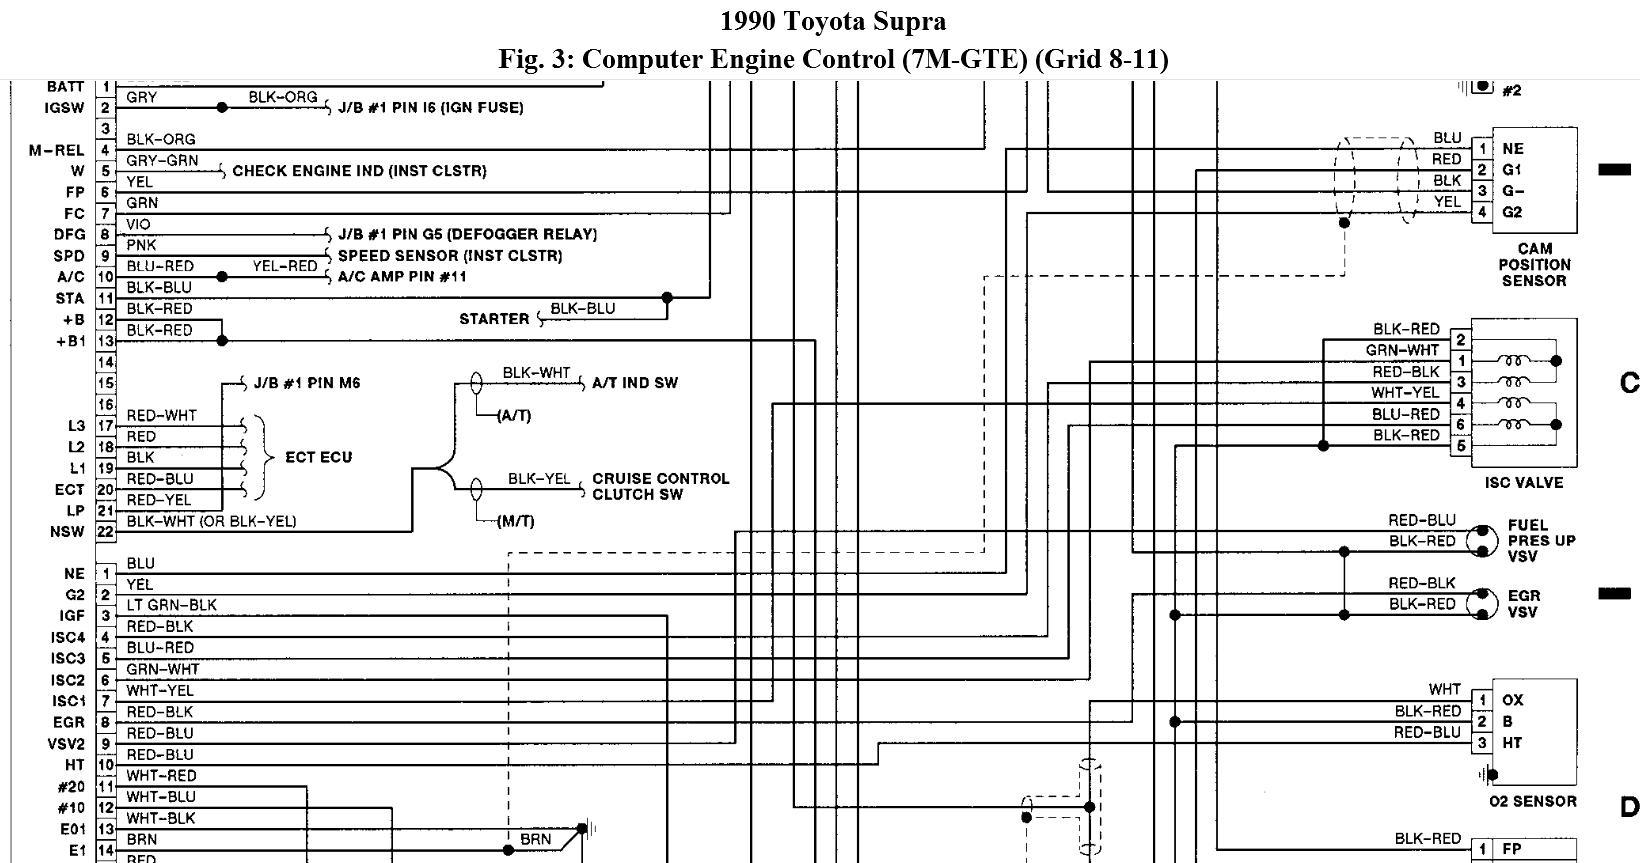 Wiring: Need Wiring Schematic for a 7m-gte Engine in a ...